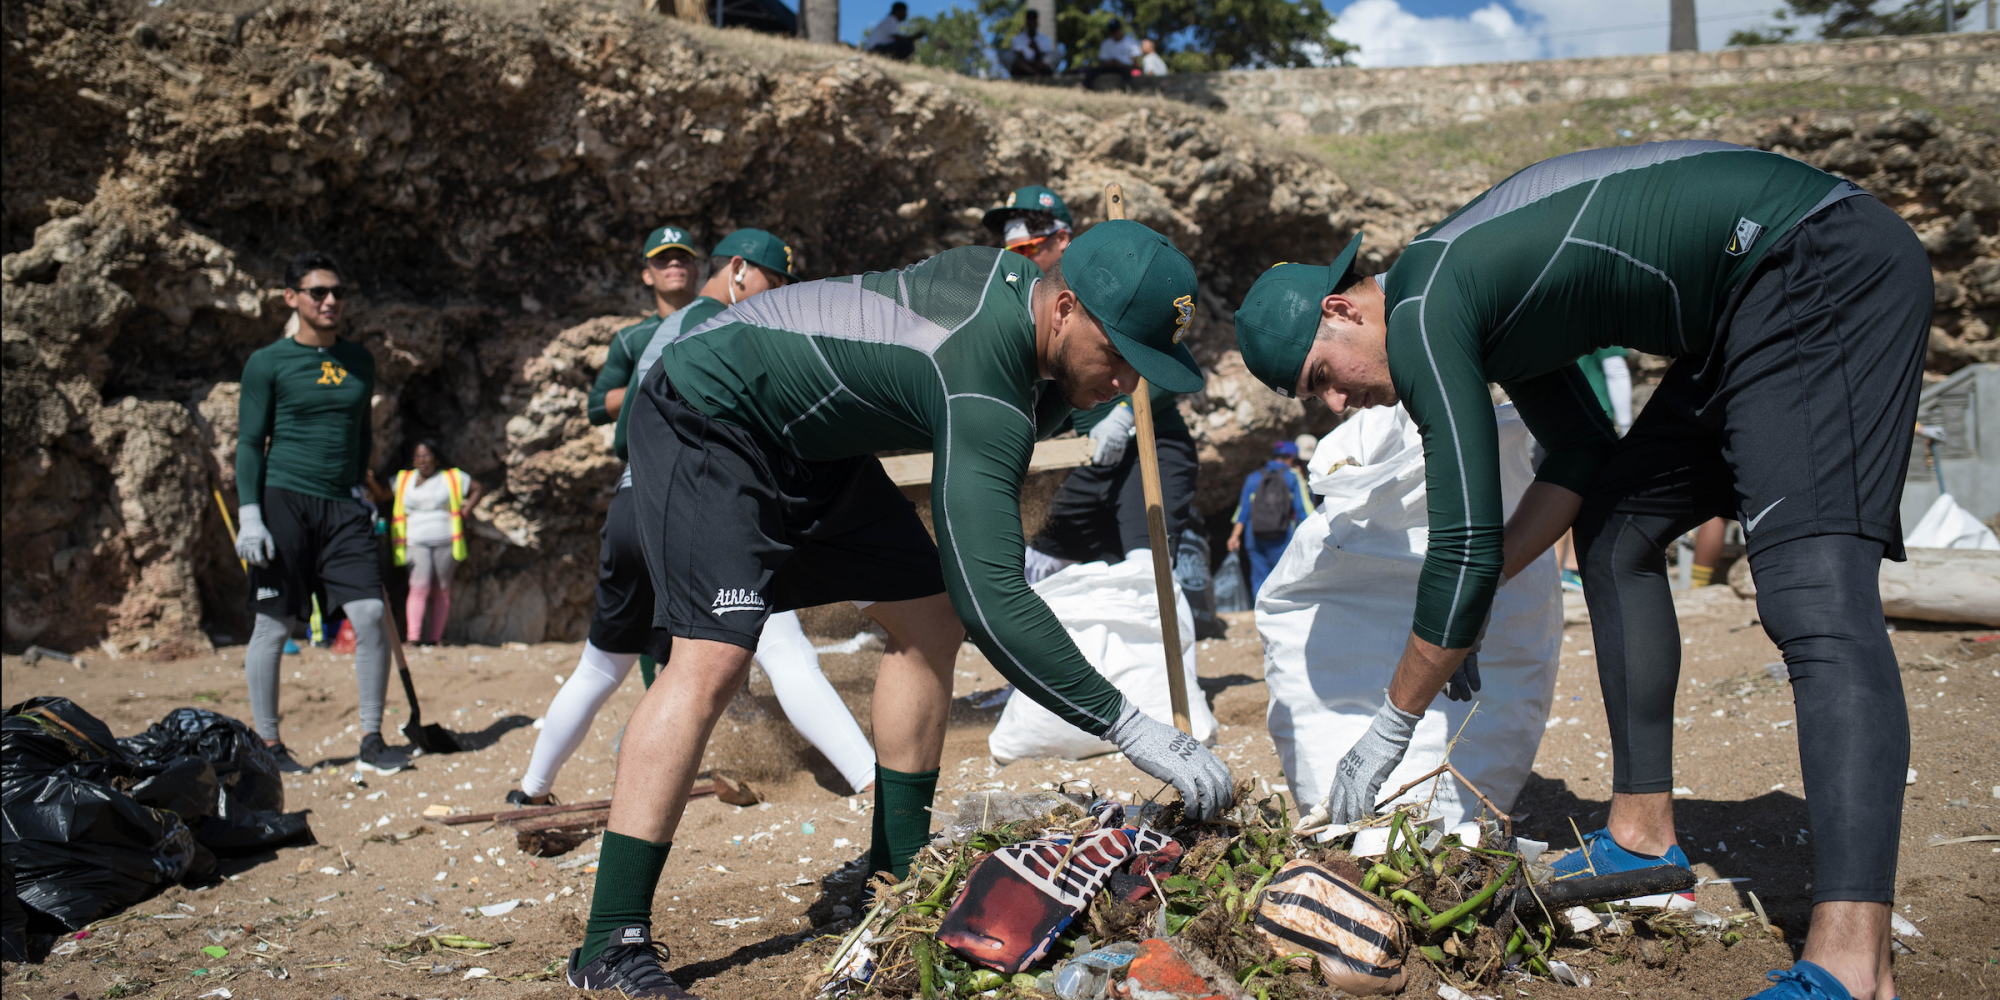 Chris Dickerson, a former MLB player and a co-founder of Players for the Planet led the first cleanup of plastic waste in the Dominican Republic in collaboration with pro-baseball players; Courtesy: Chris Dickerson, Players for the Planet